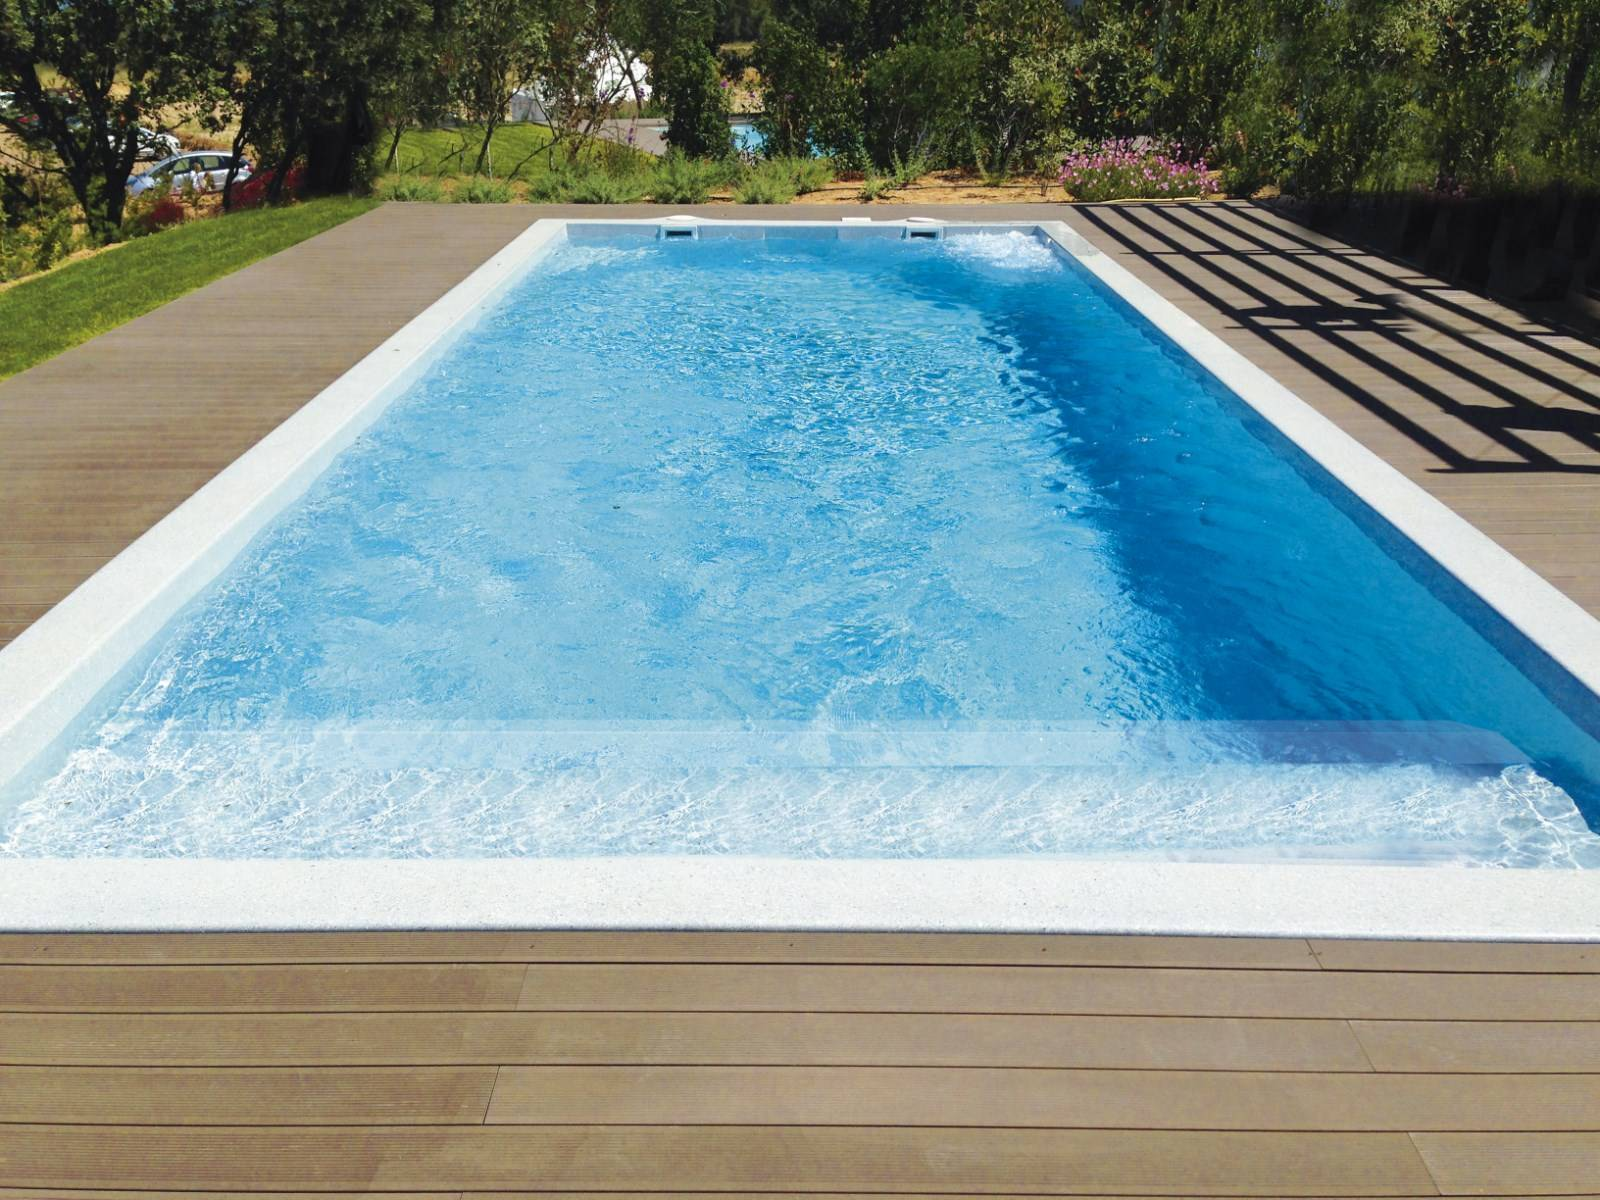 Piscine coque polyester freedom mod le riviera for Piscine coque 3x3